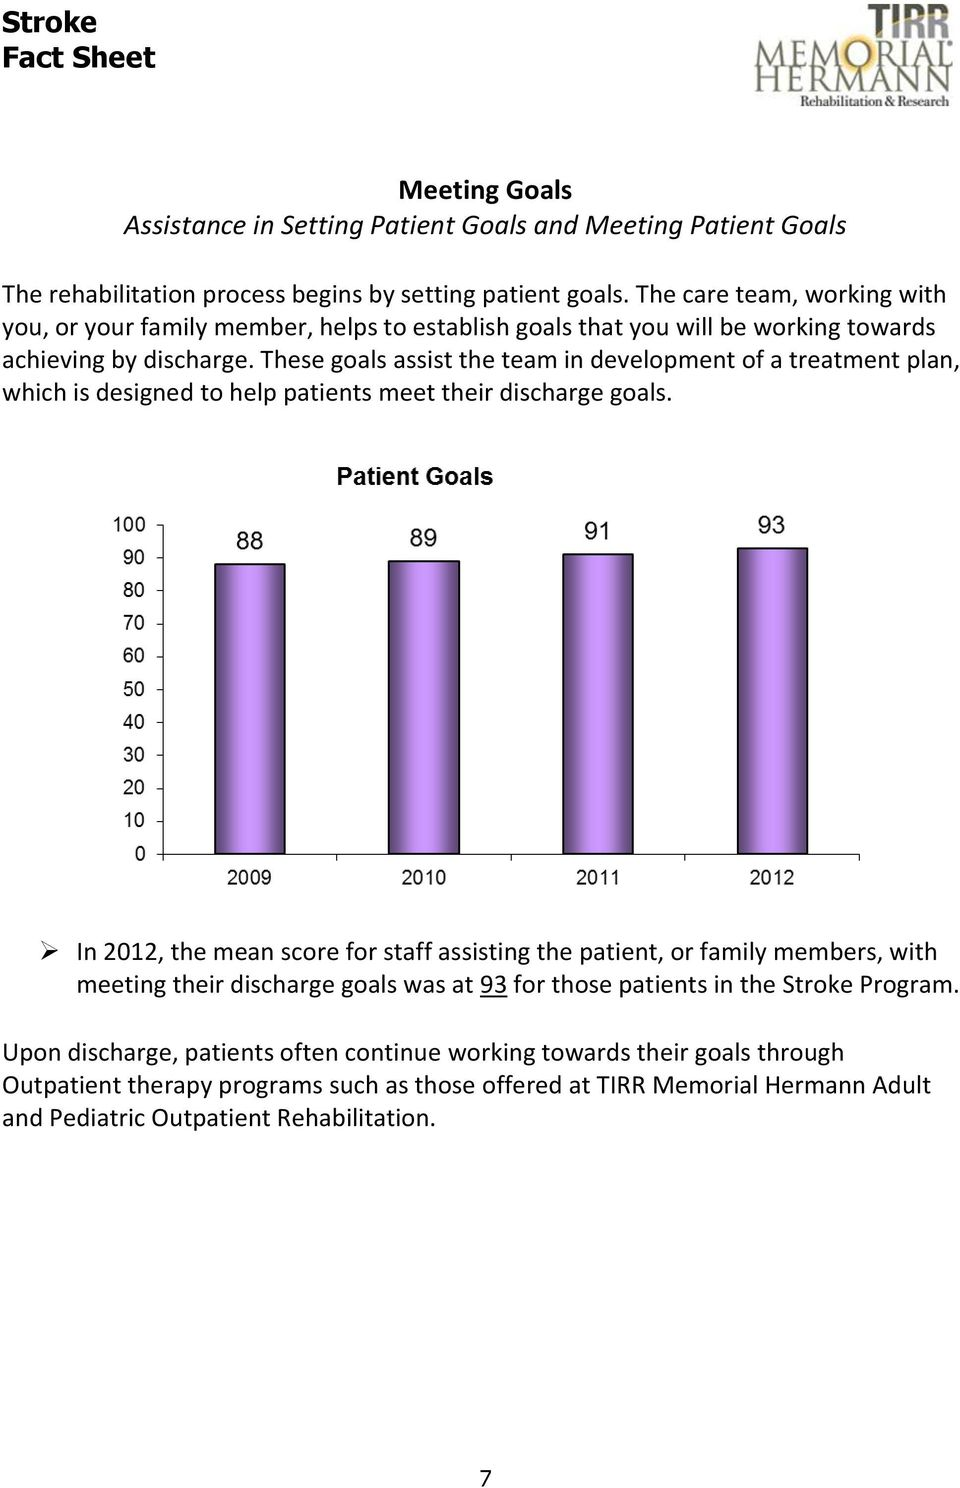 These goals assist the team in development of a treatment plan, which is designed to help patients meet their discharge goals.